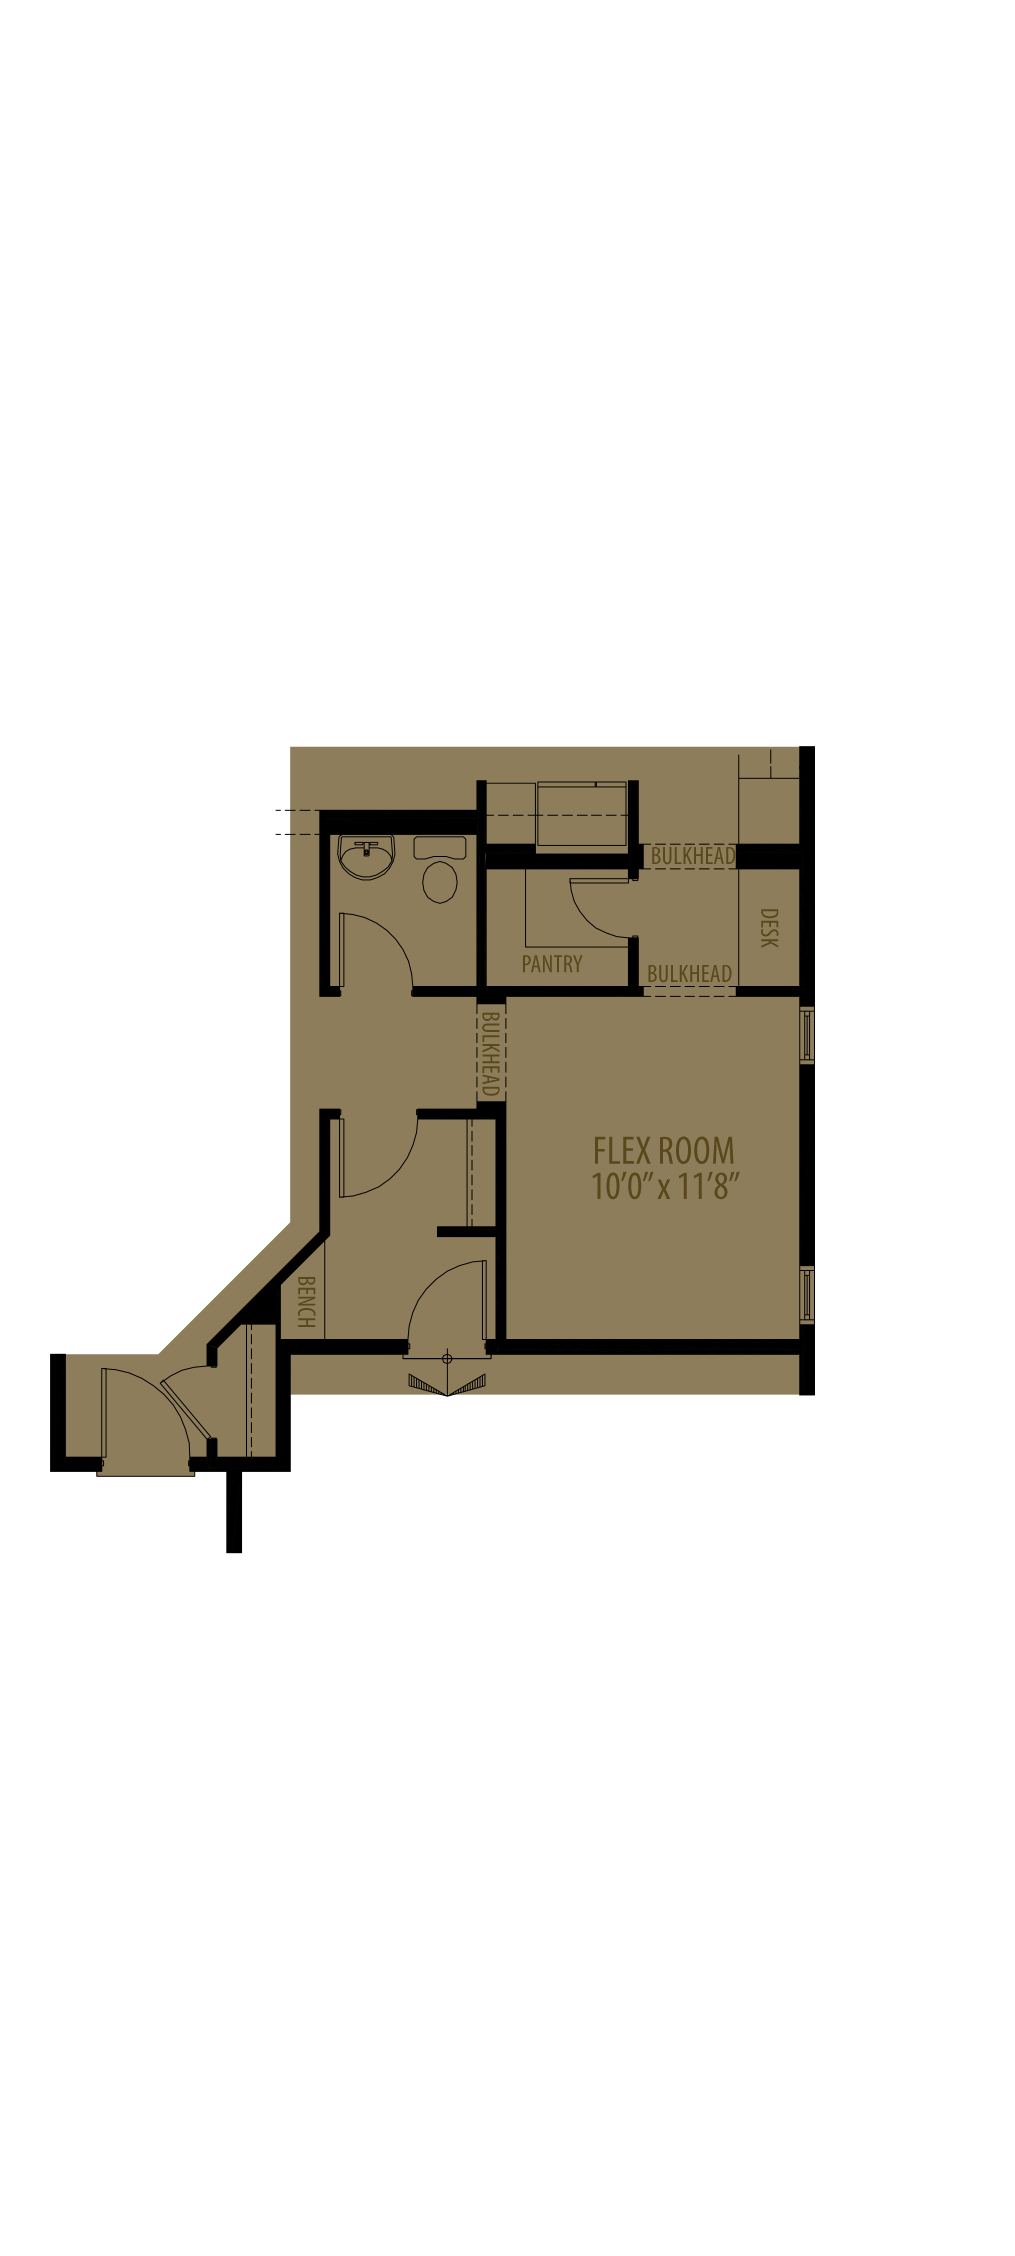 Flex Room Adds 165 Sq Ft